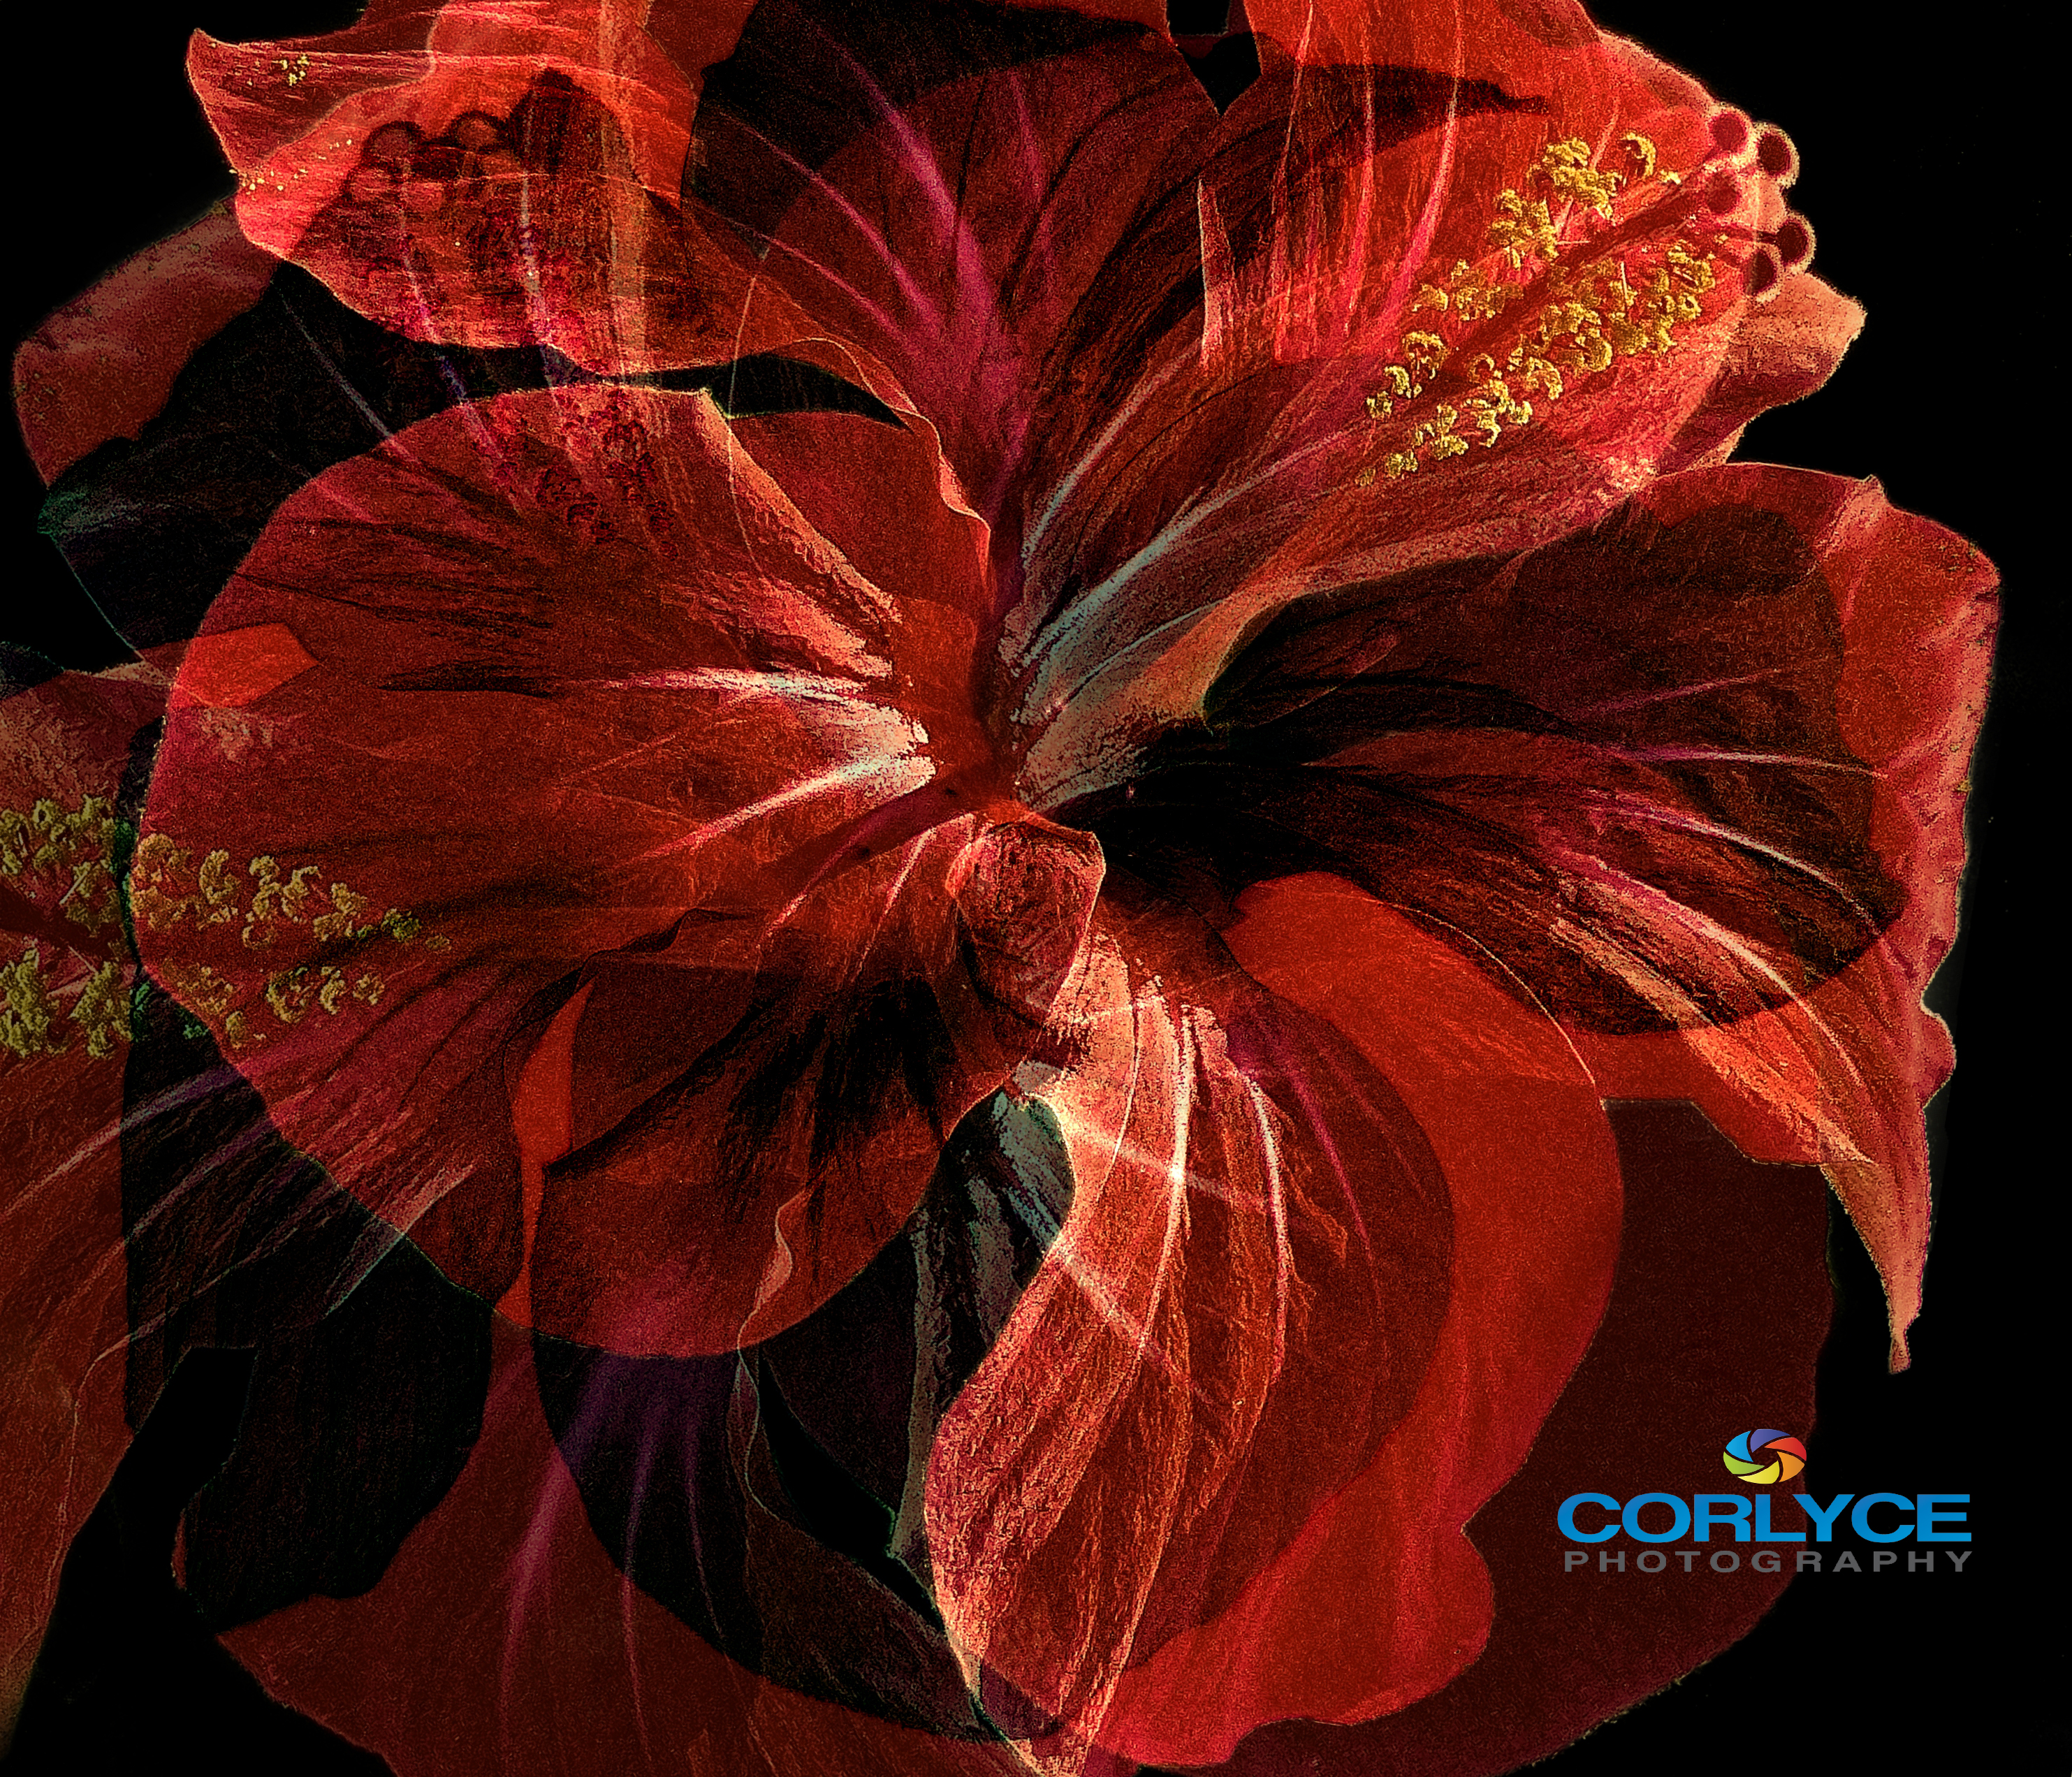 Hibiscus Dream. For Sale on Fine Art America.